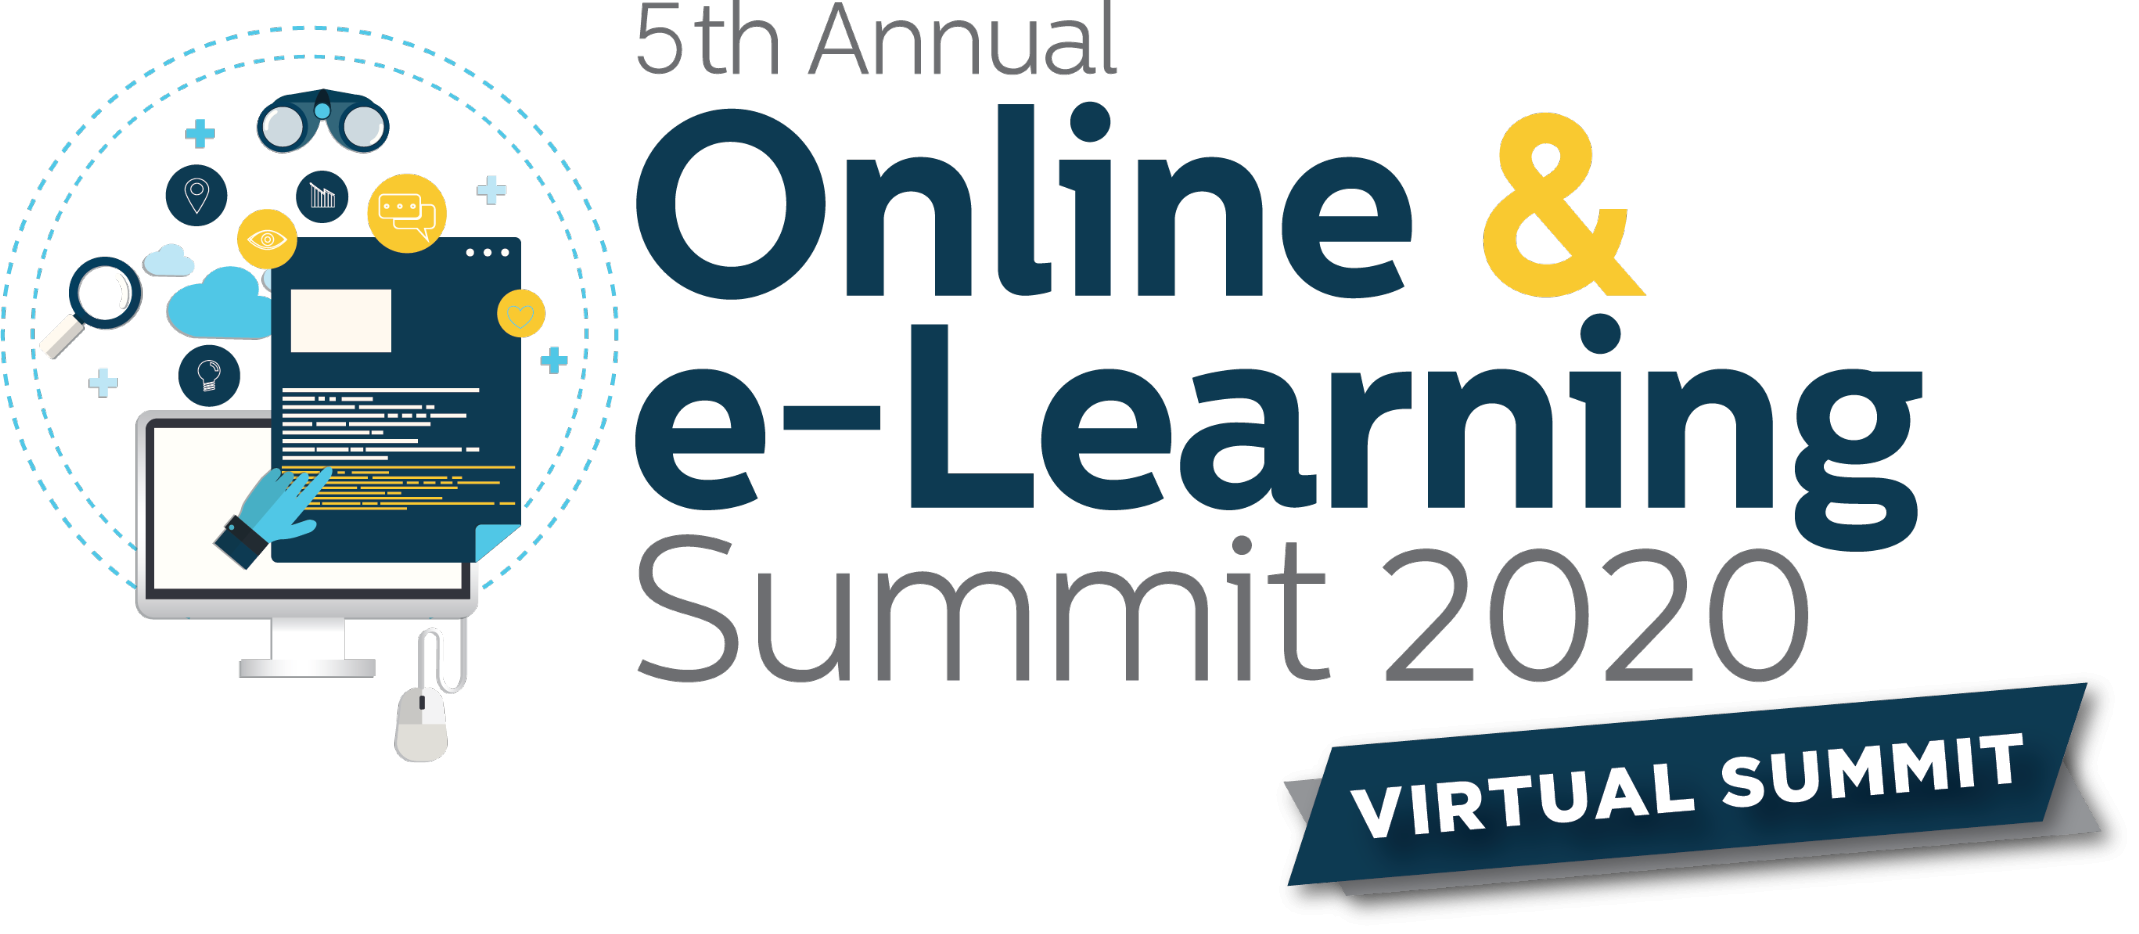 Online & eLearning Virtual Summit